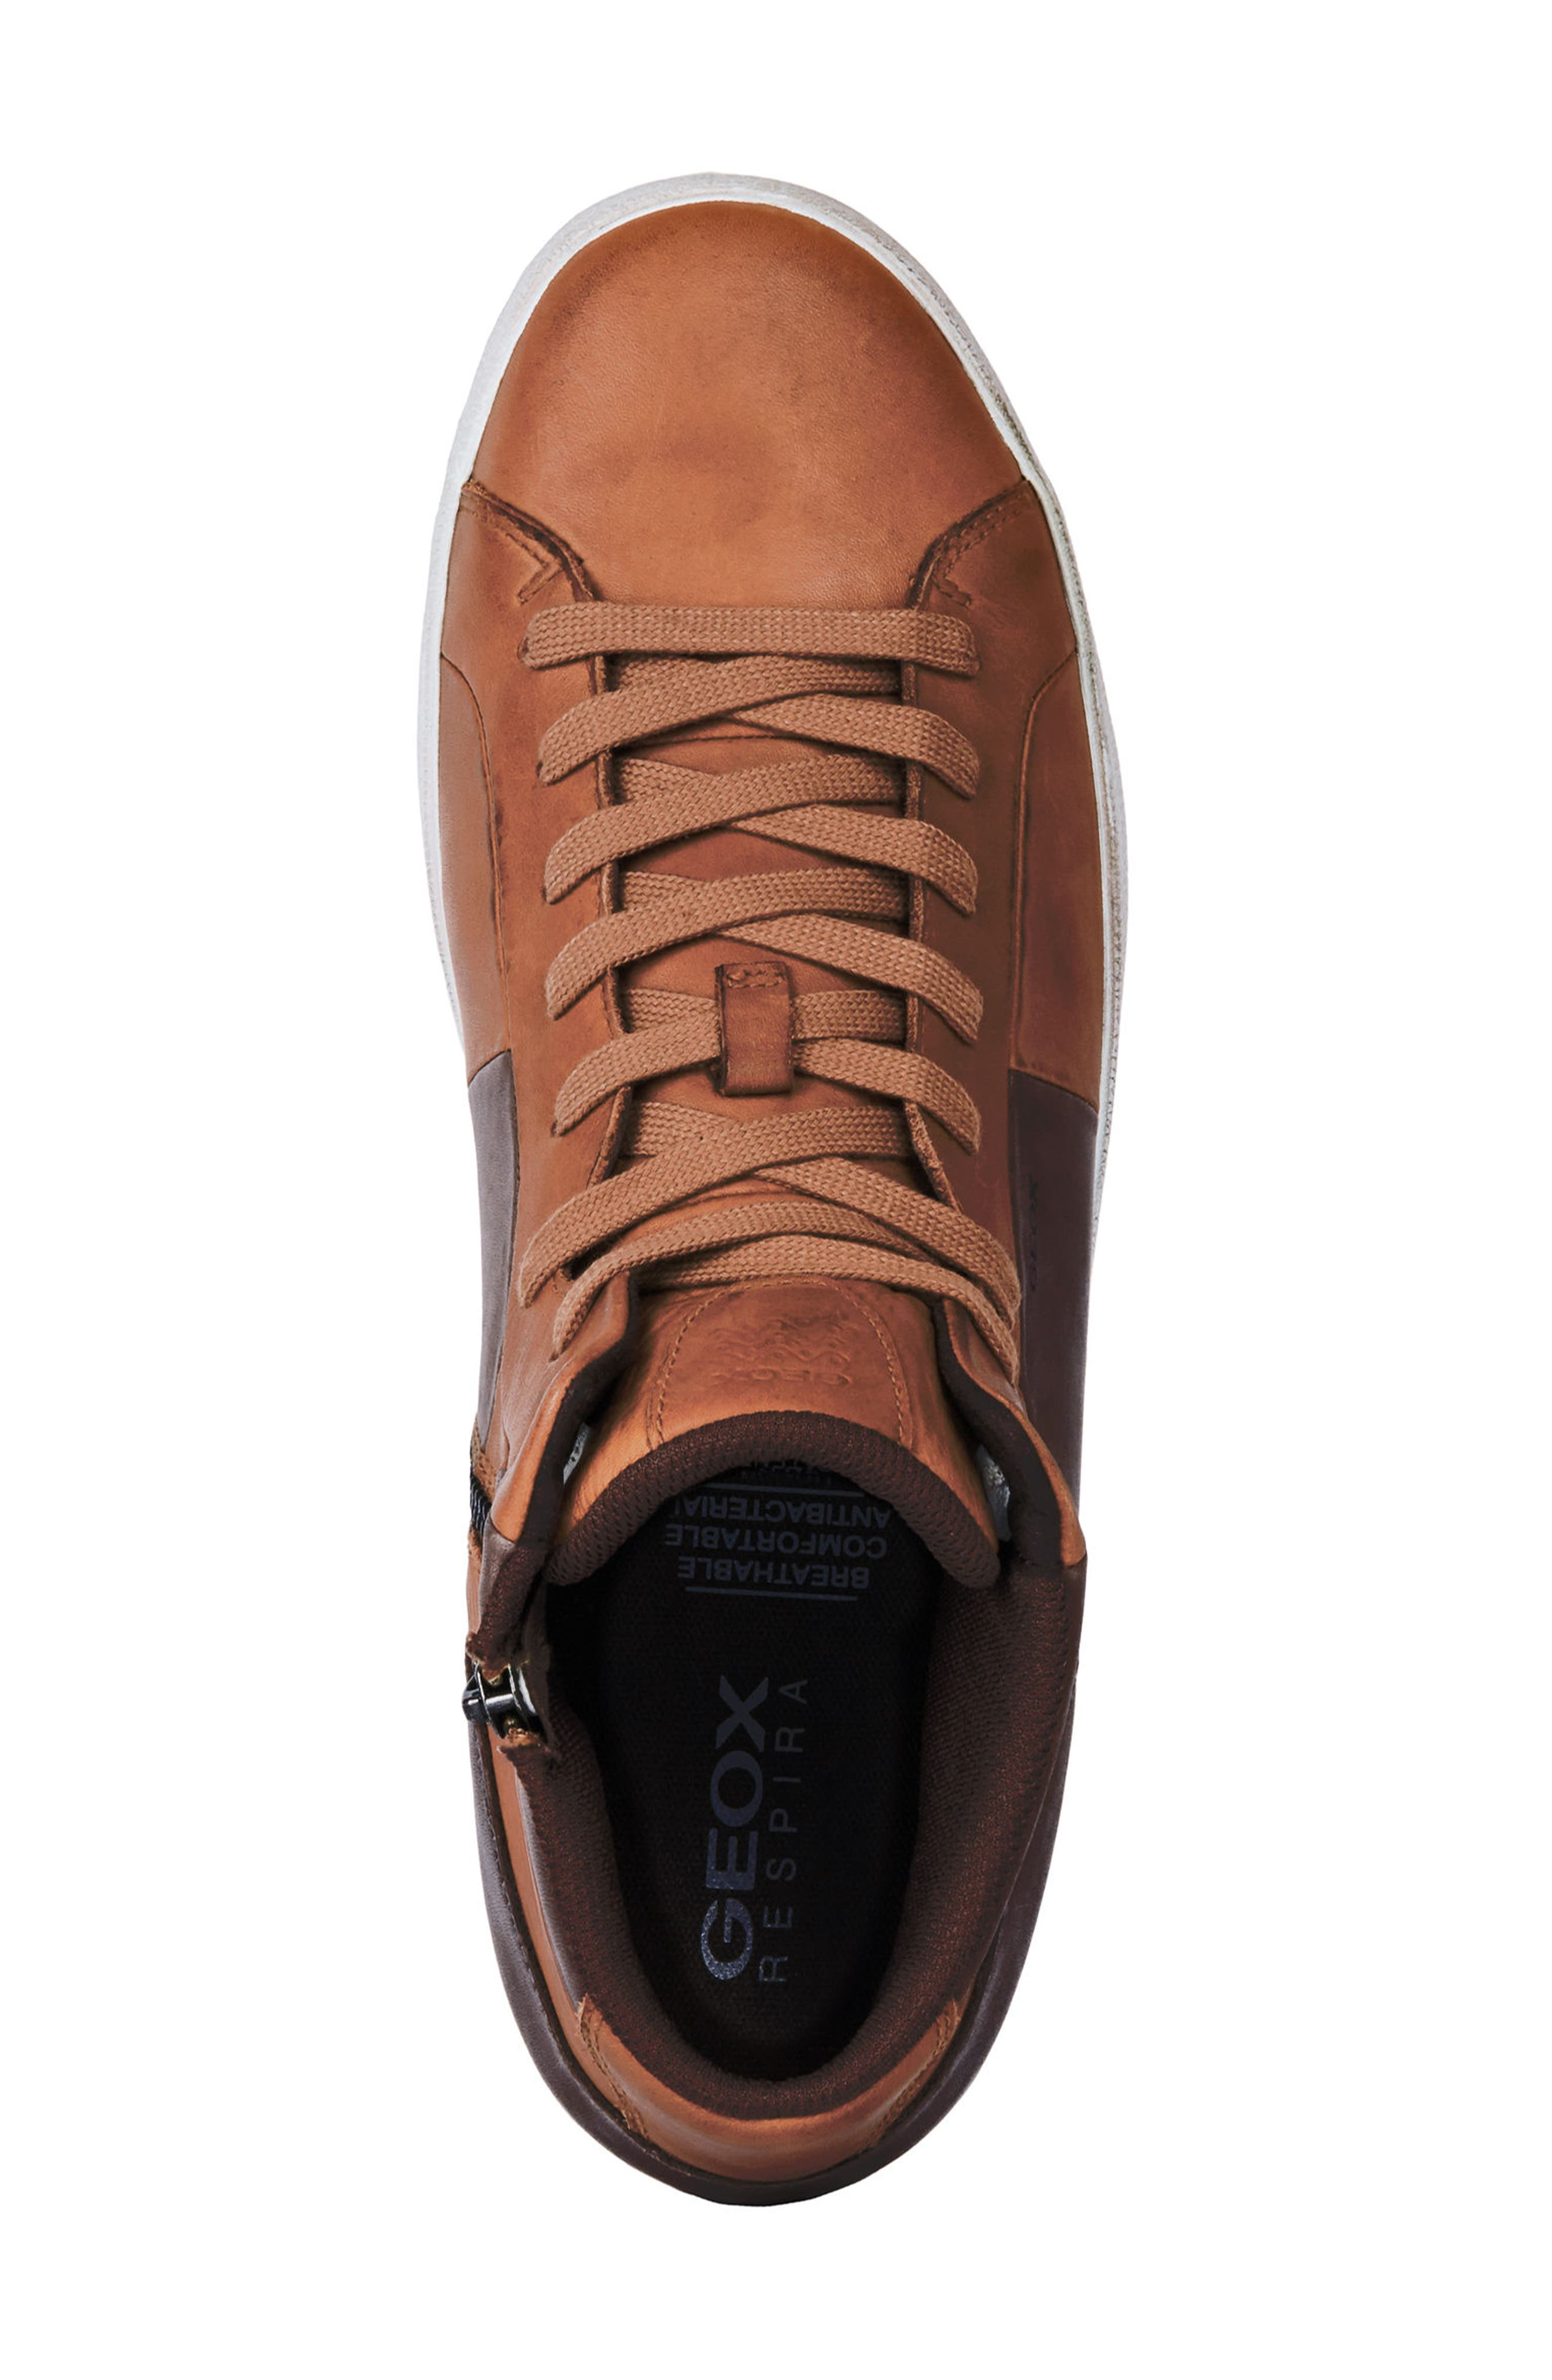 Smart 84 High Top Sneaker,                             Alternate thumbnail 5, color,                             COGNAC/ COFFEE LEATHER